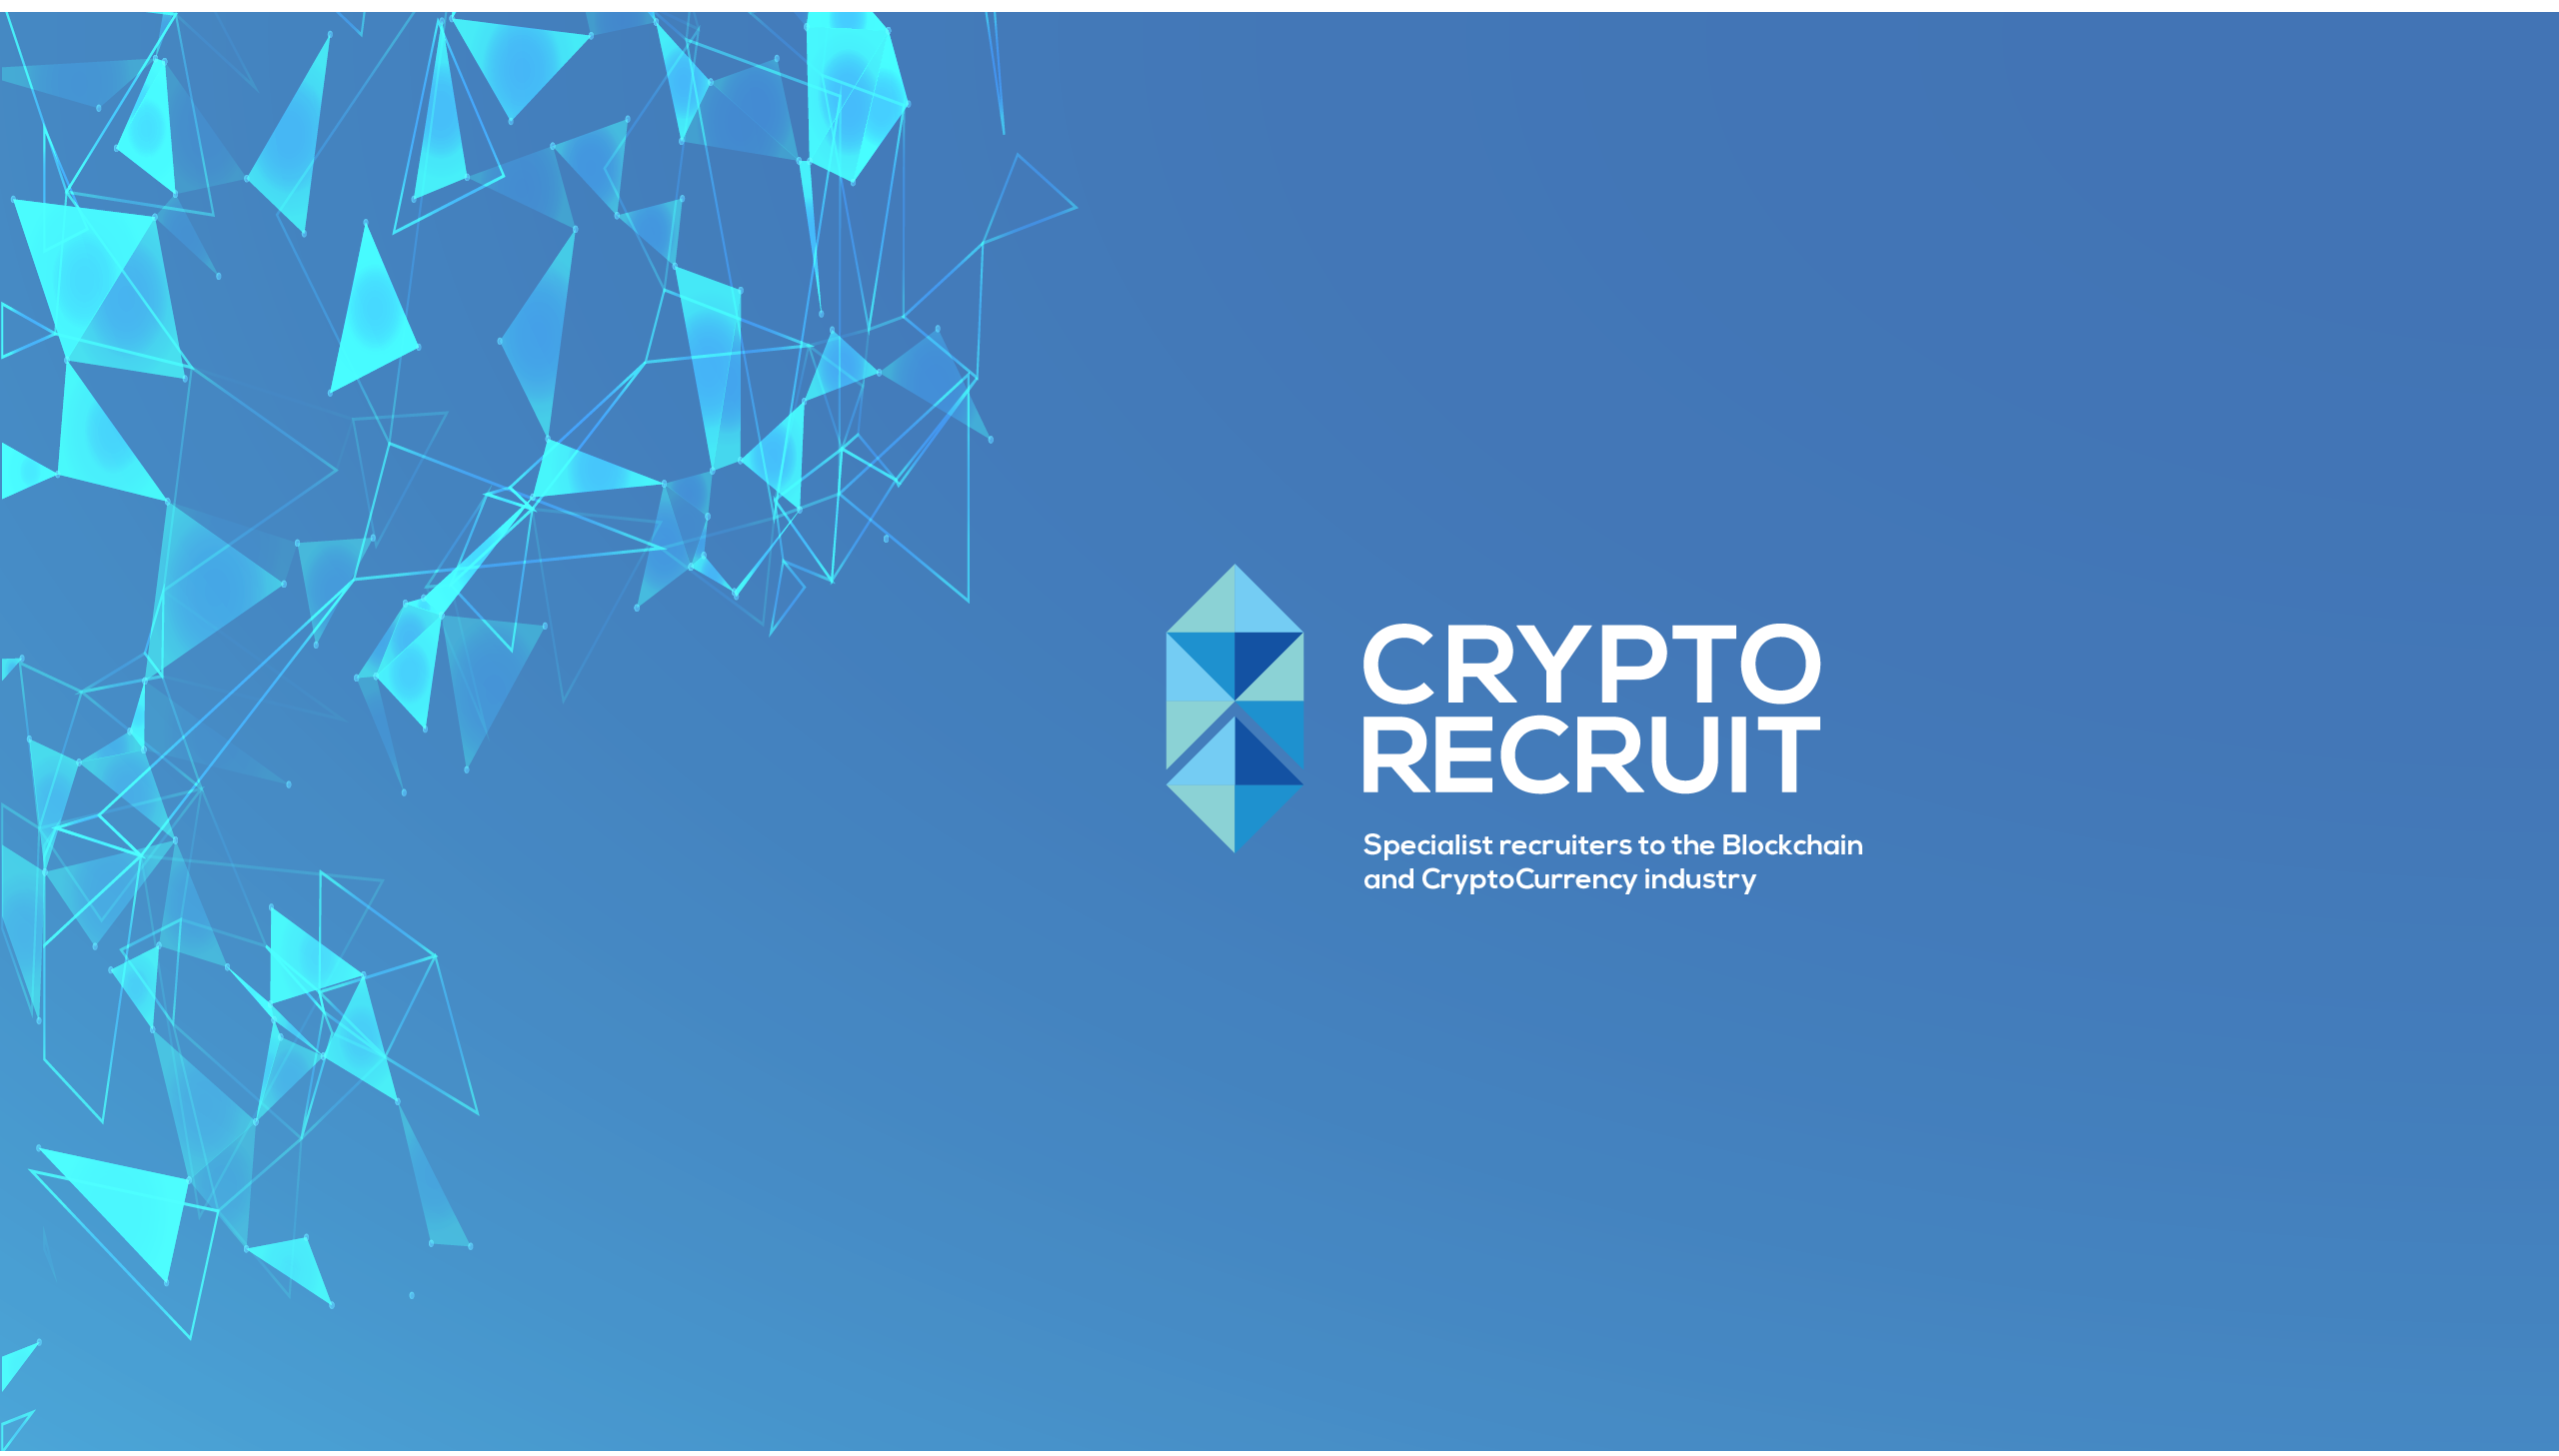 Crypto Recruit